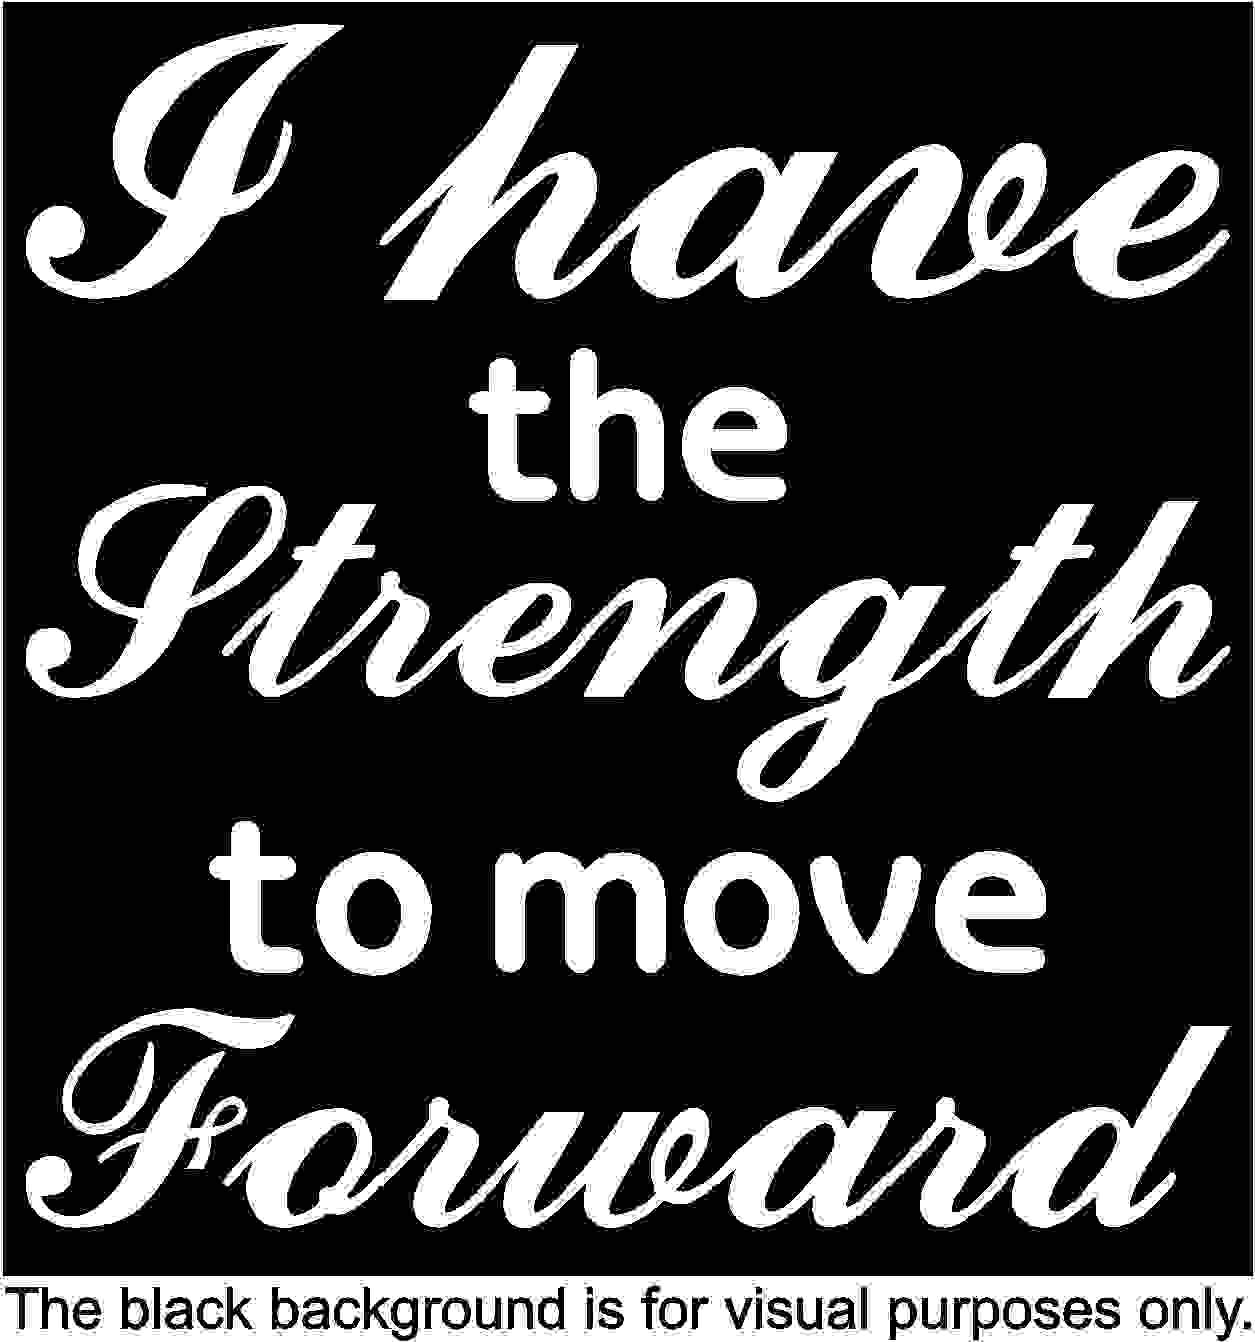 Motivation Quote I Have The Strength To Move Forward Decal Sticker Vinyl Car Window Tumblers Wall Laptops Cellphones Phones Tablets Ipads Helmets Motorcycles Computer Towers V and T Gifts